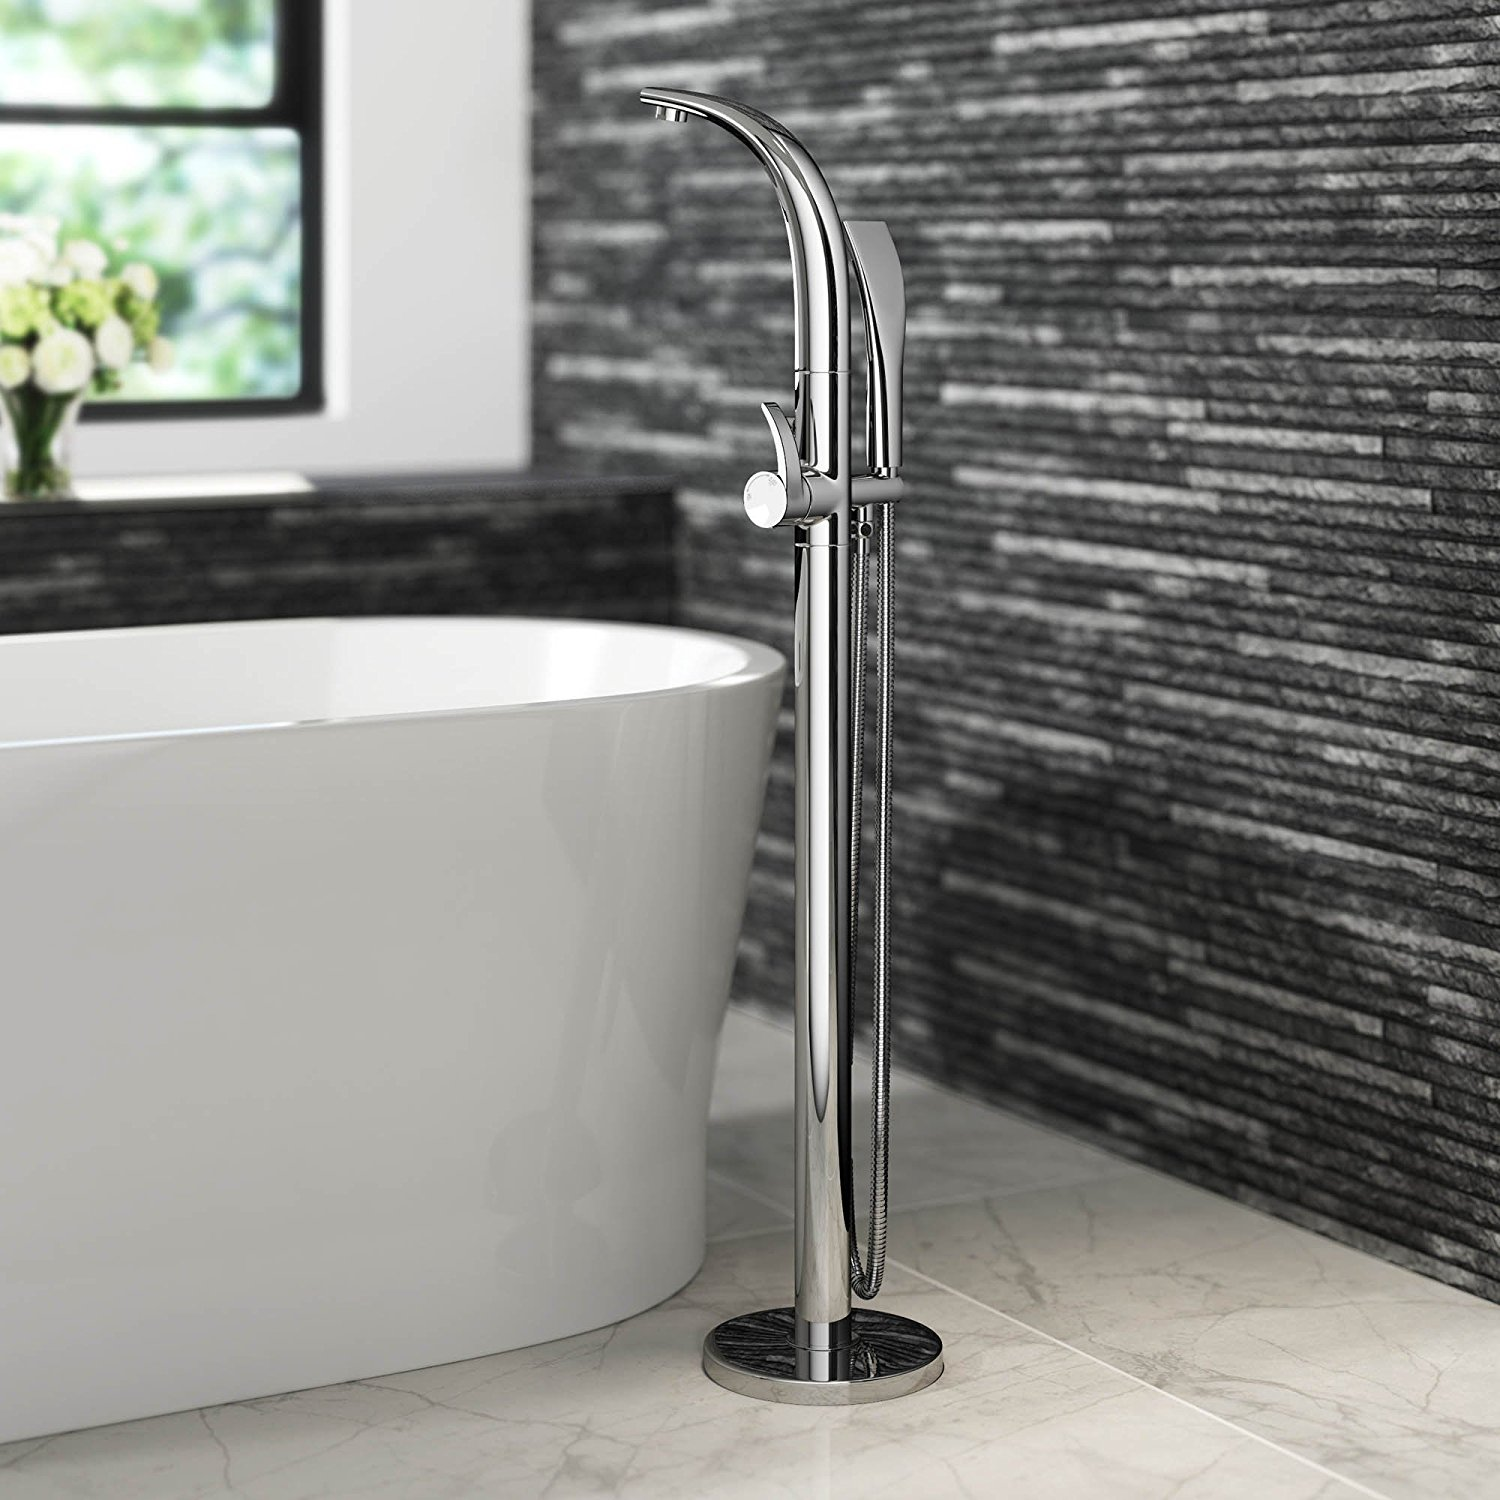 Bathroom Taps Buying Guide - The PlumbNation Blog